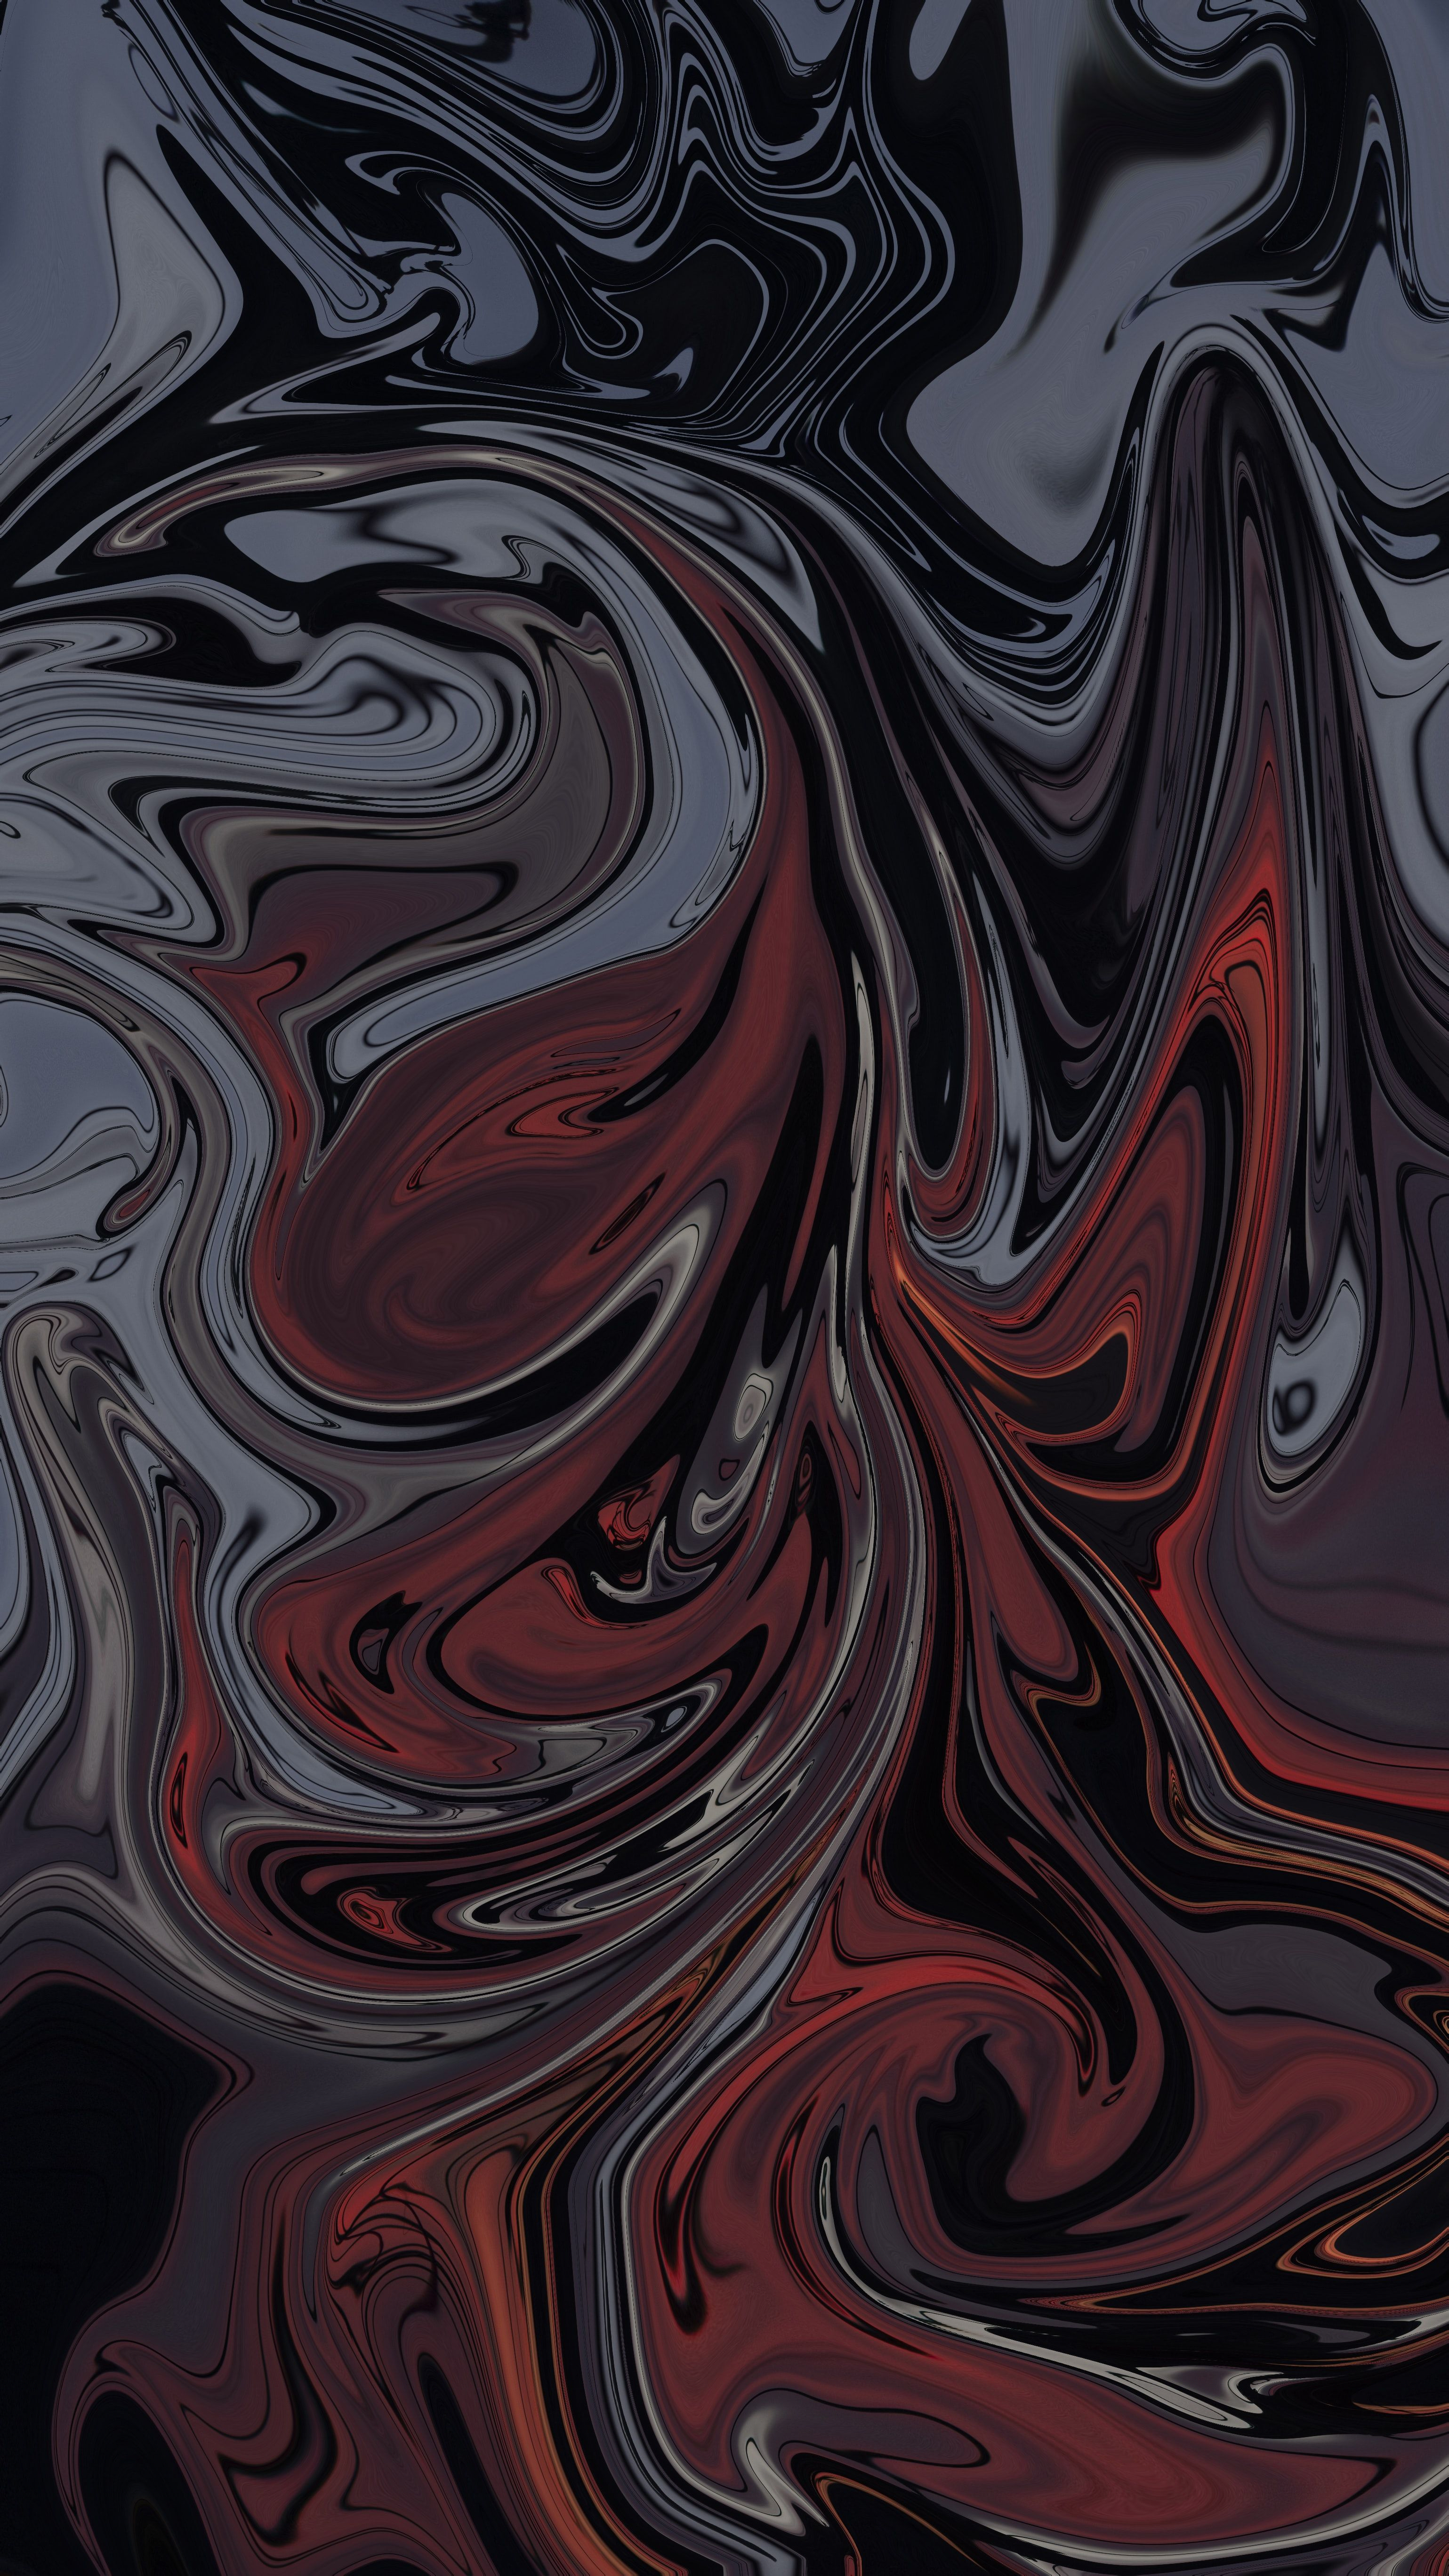 Modern Art Art Painting And Graphics Hd Photo By Brandon Vazquez Brandonvazquez On Unsplash Red Abstract Painting Art Wallpaper Iphone Painting Wallpaper